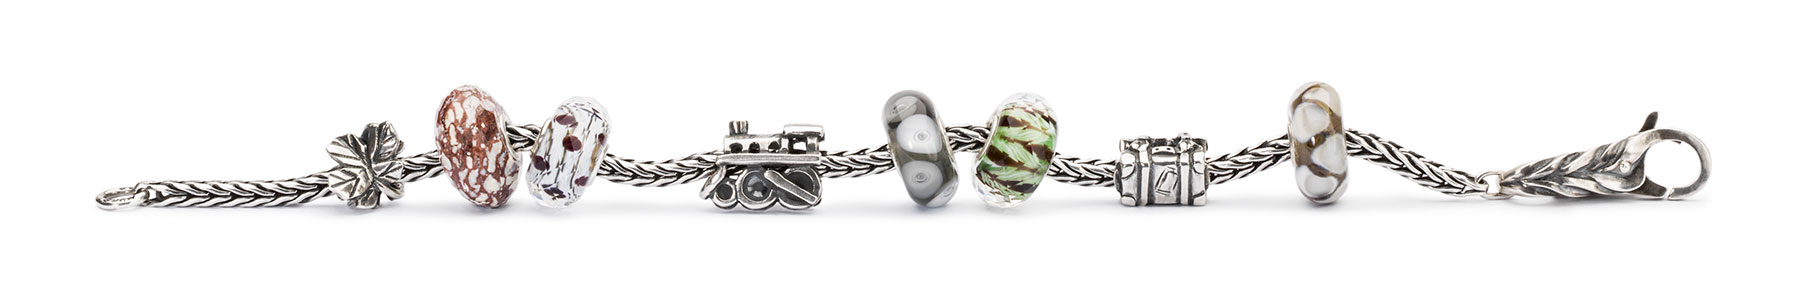 Silver bracelet adorned with the new beads from the summer collection